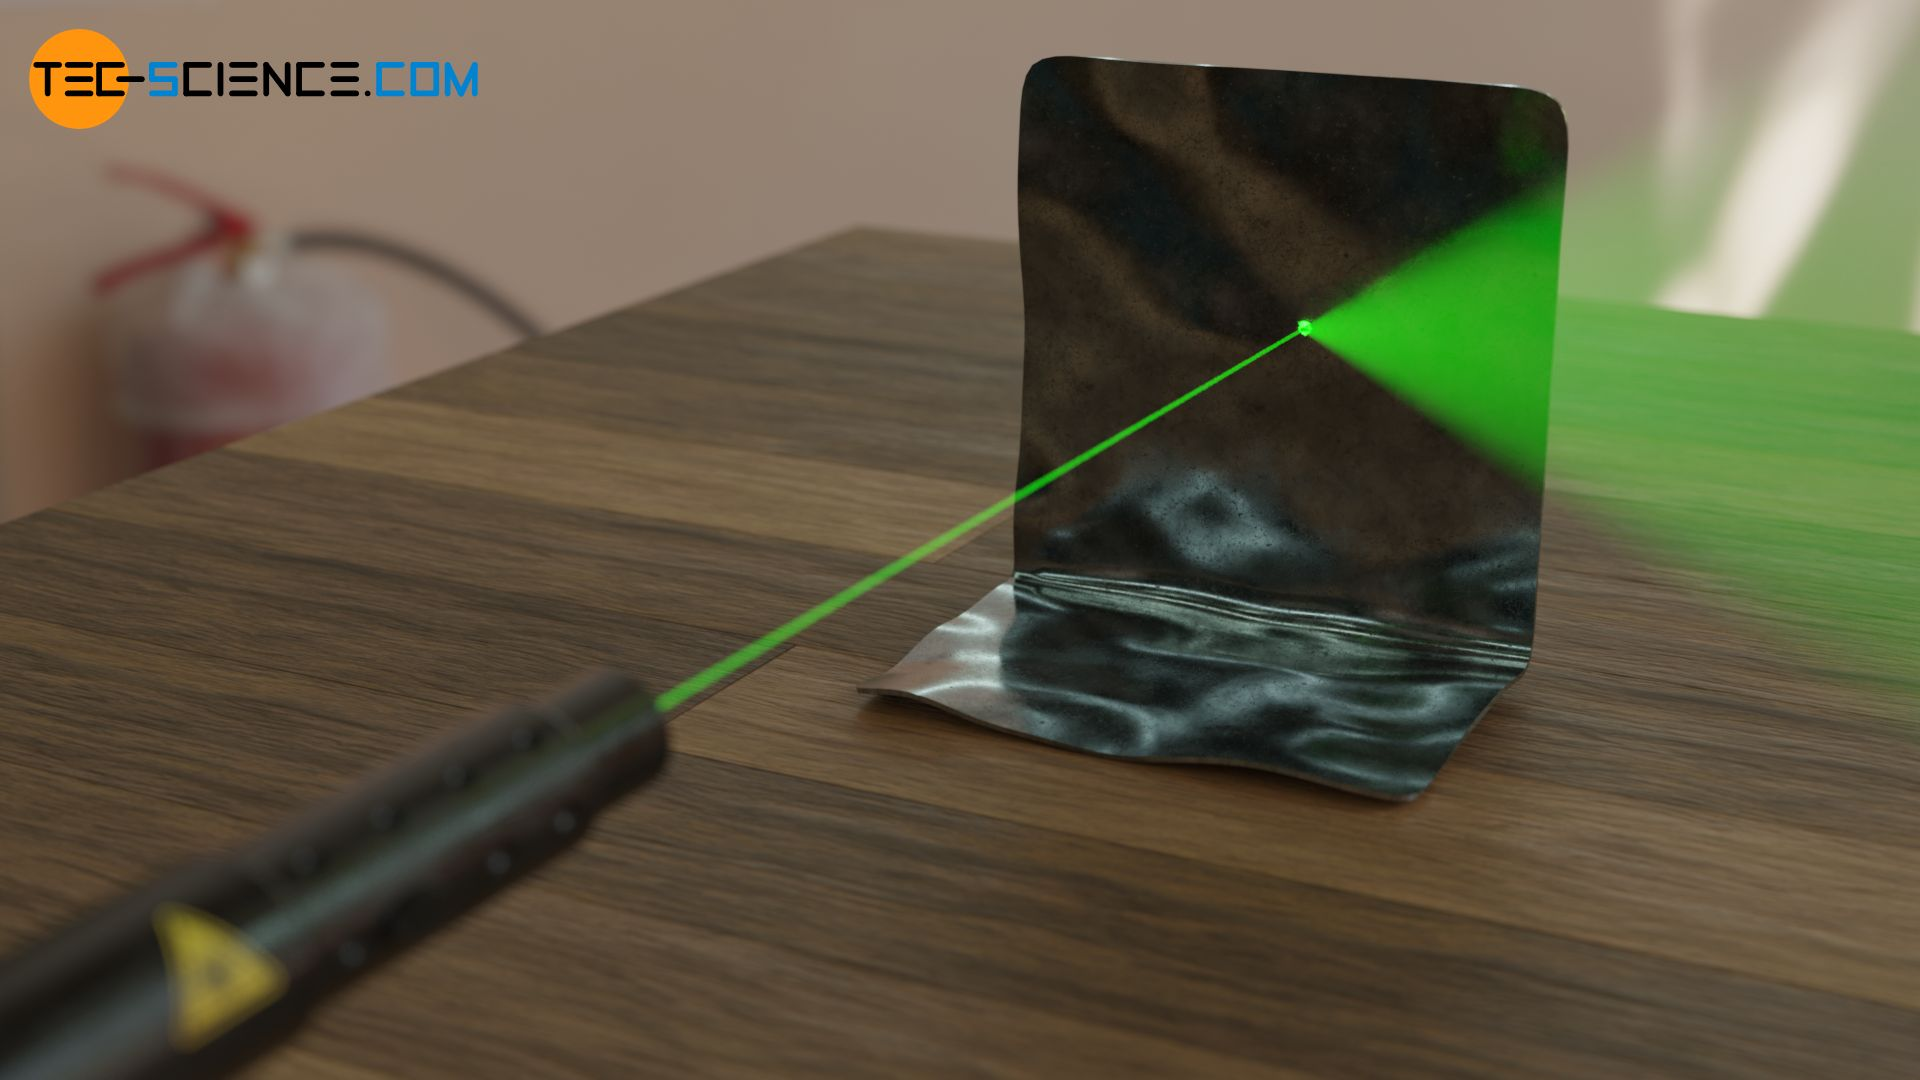 Laser beam on a reflecting surface